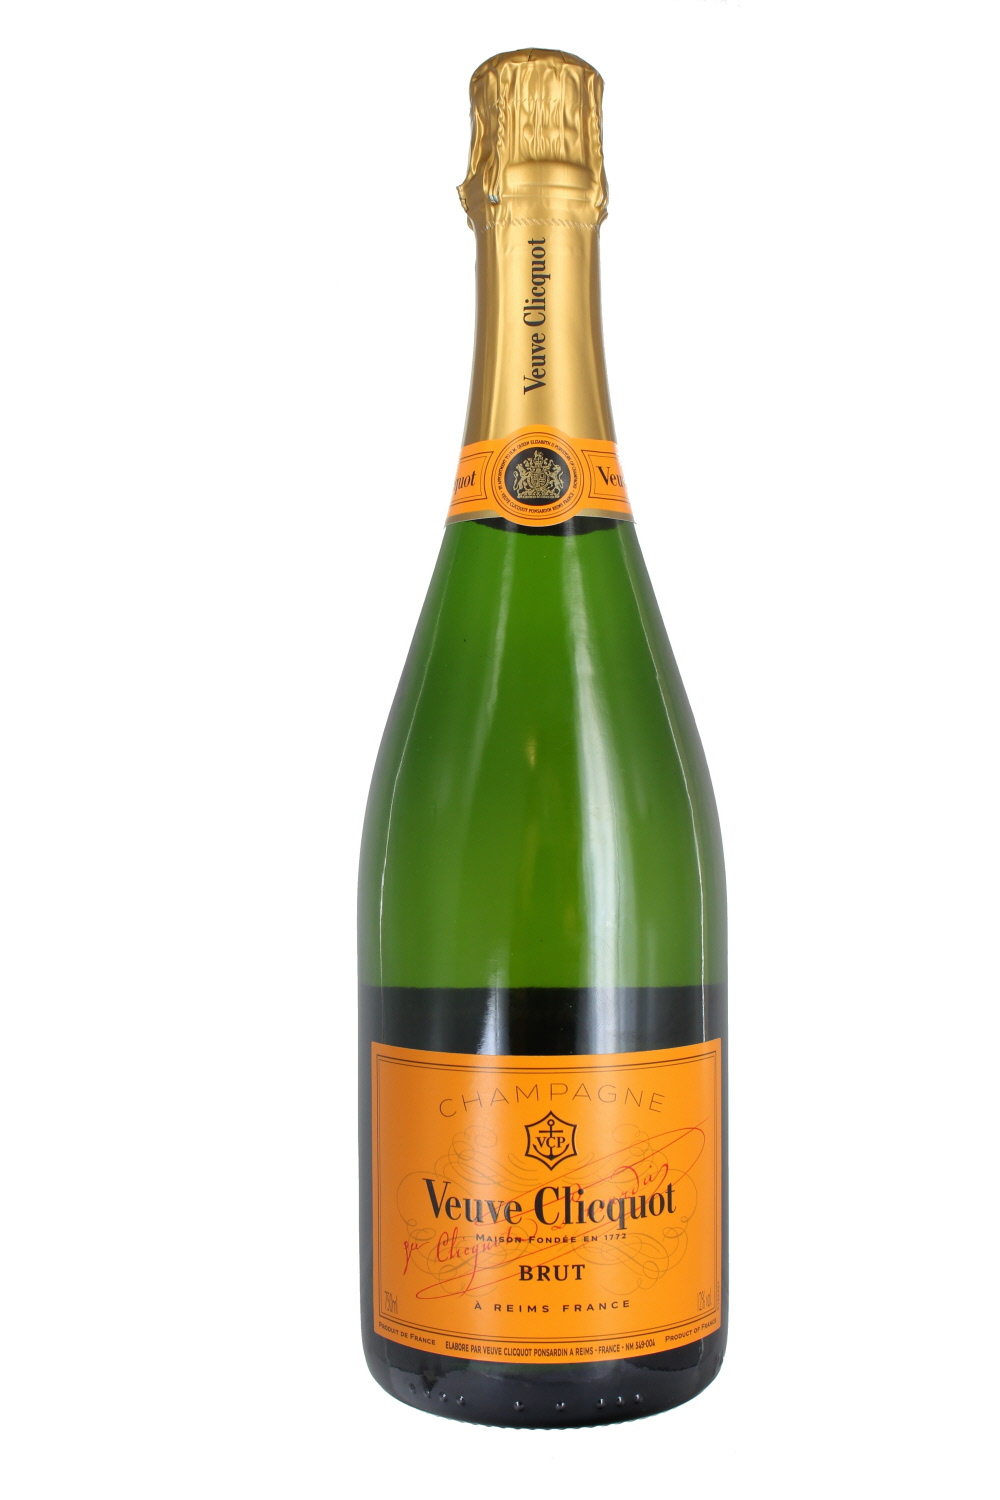 N.V. Veuve Clicquot Brut, Reims, Champagne, France (Case)